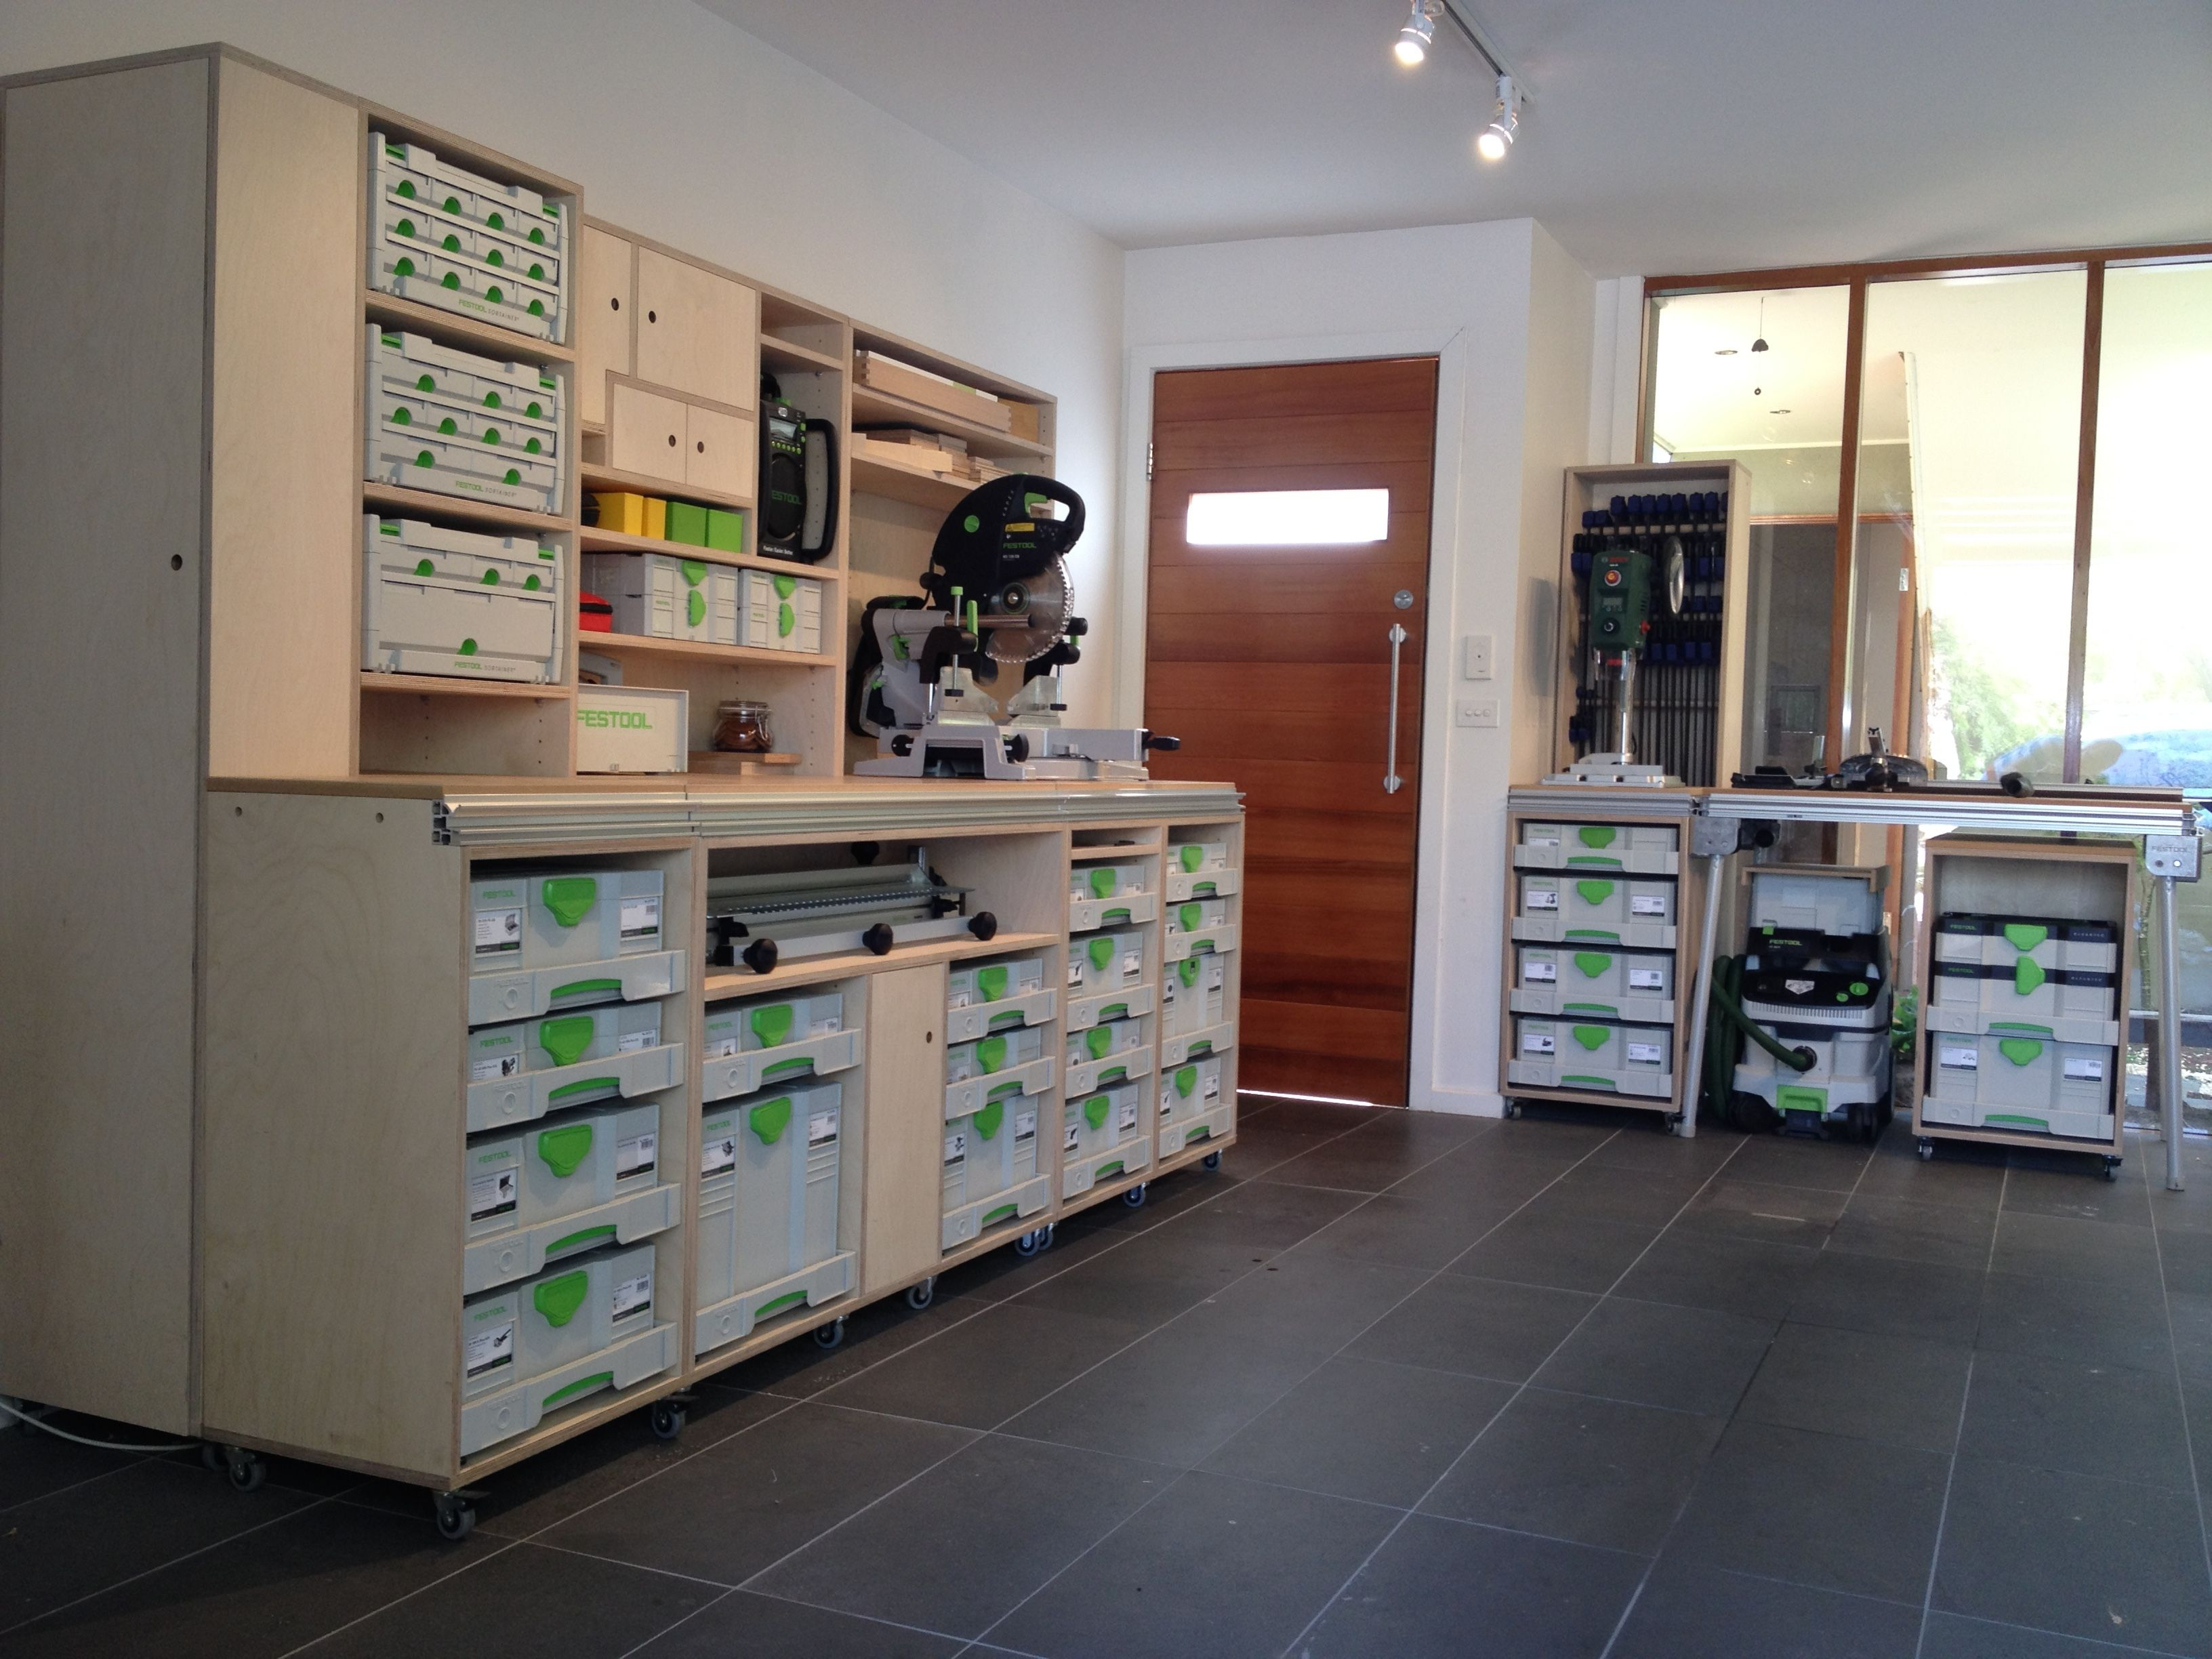 wall unit using sys az festool sysport pinterest werkstatt werkzeuge und holzwerkstatt. Black Bedroom Furniture Sets. Home Design Ideas